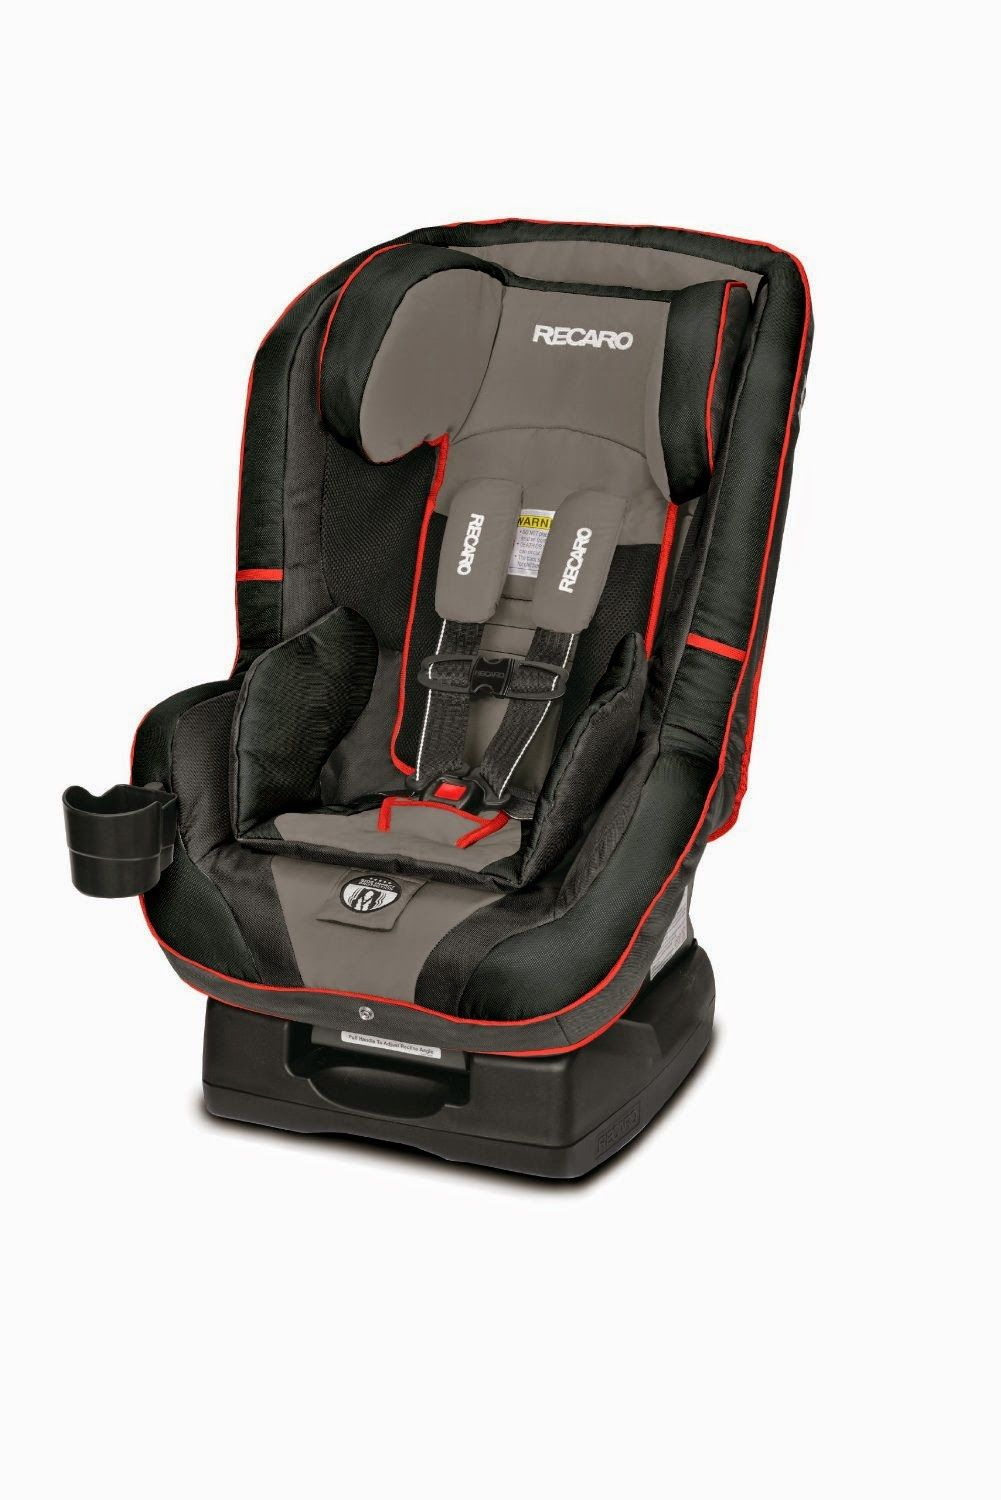 giveaway for baby Win The RECARO Performance Convertible